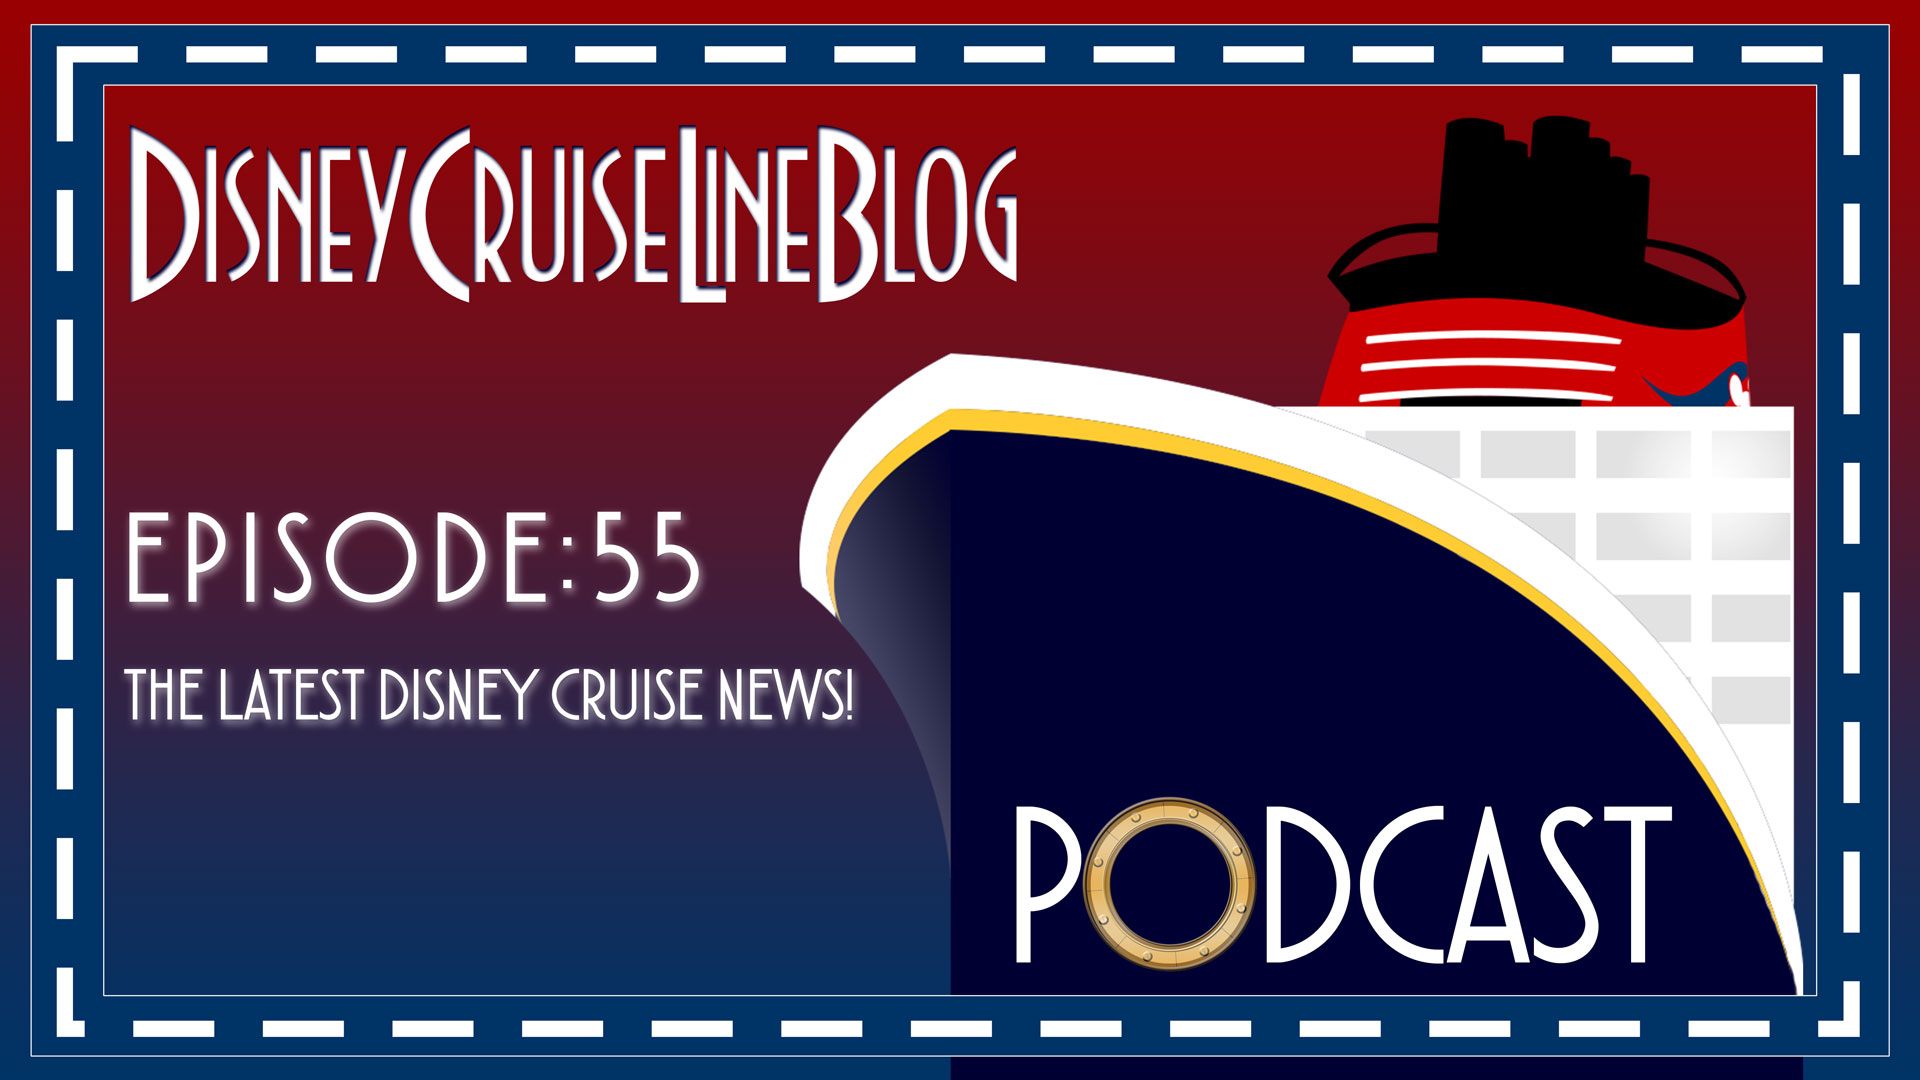 DCL Blog Podcast Episode 55 News